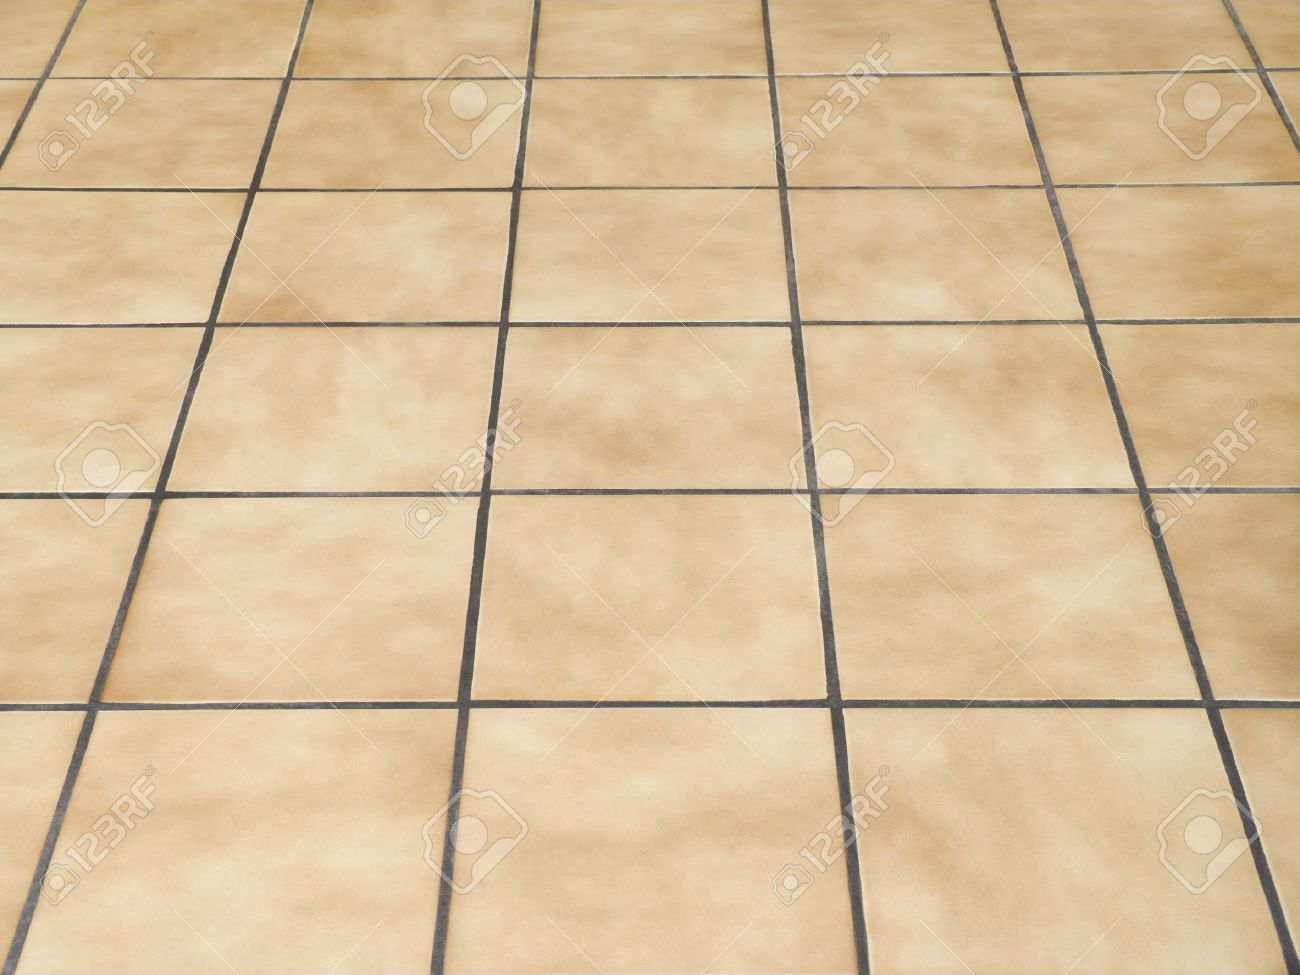 Brown Ceramic Floor Tiles Closeup Texture Stock Photo, Picture And ...